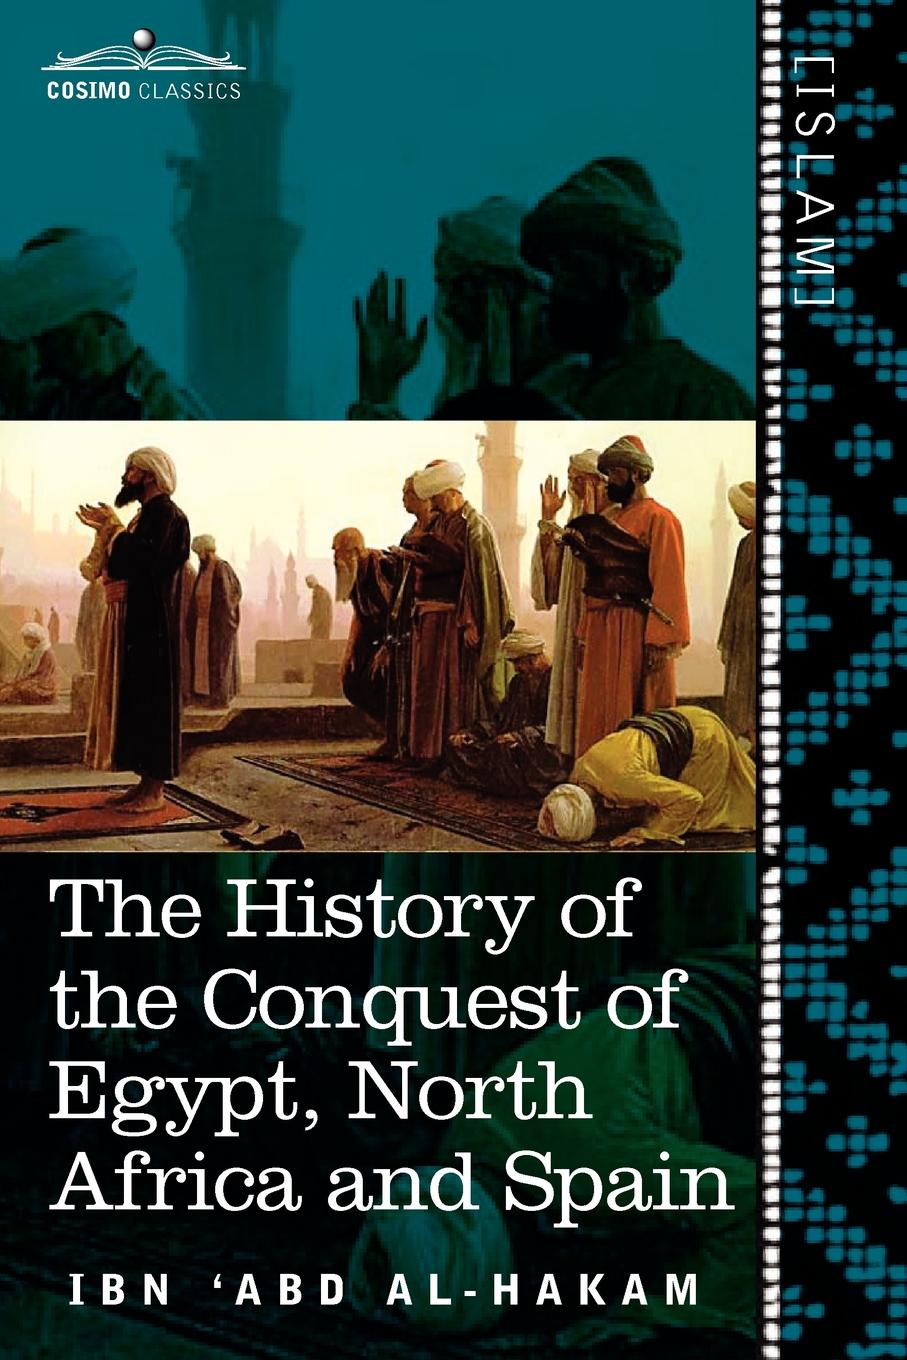 Ibn 'Abd Al-Hakam, Charles Cutler Torrey The History of the Conquest of Egypt, North Africa and Spain. Known as the Futuh MIS R of Ibn Abd Al-H Akam s lane poole a history of egypt vol 6 a history of egypt in the middle ages